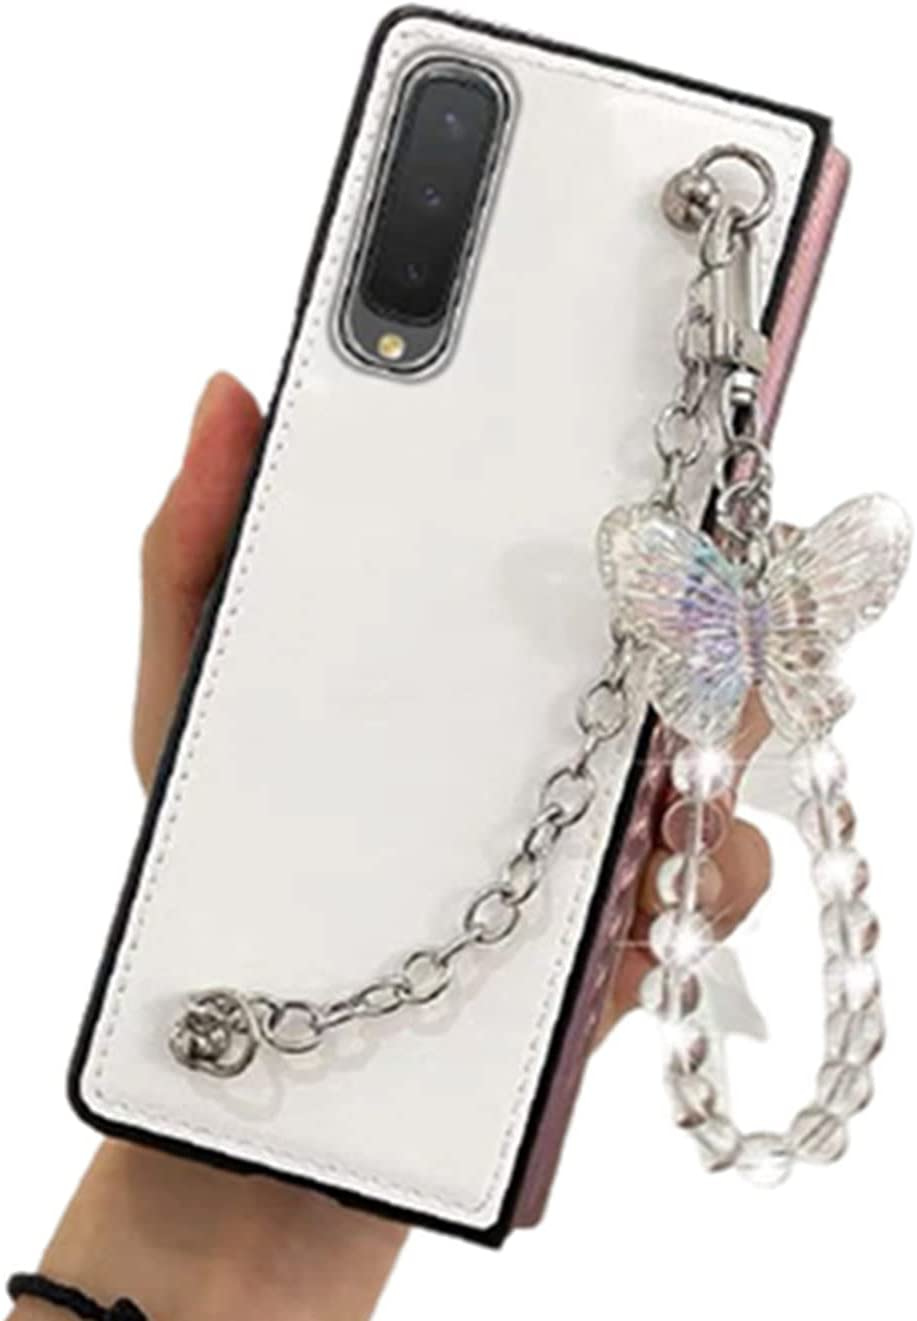 for Samsung Galaxy Z Fold 3 5G Case with Strap Luxury PU Leather Cute Butterfly Design, Soft Lighweight Shockproof Protective Phone Case Cover for Samsung Z Fold 3 for Girls Women 2021 (White)